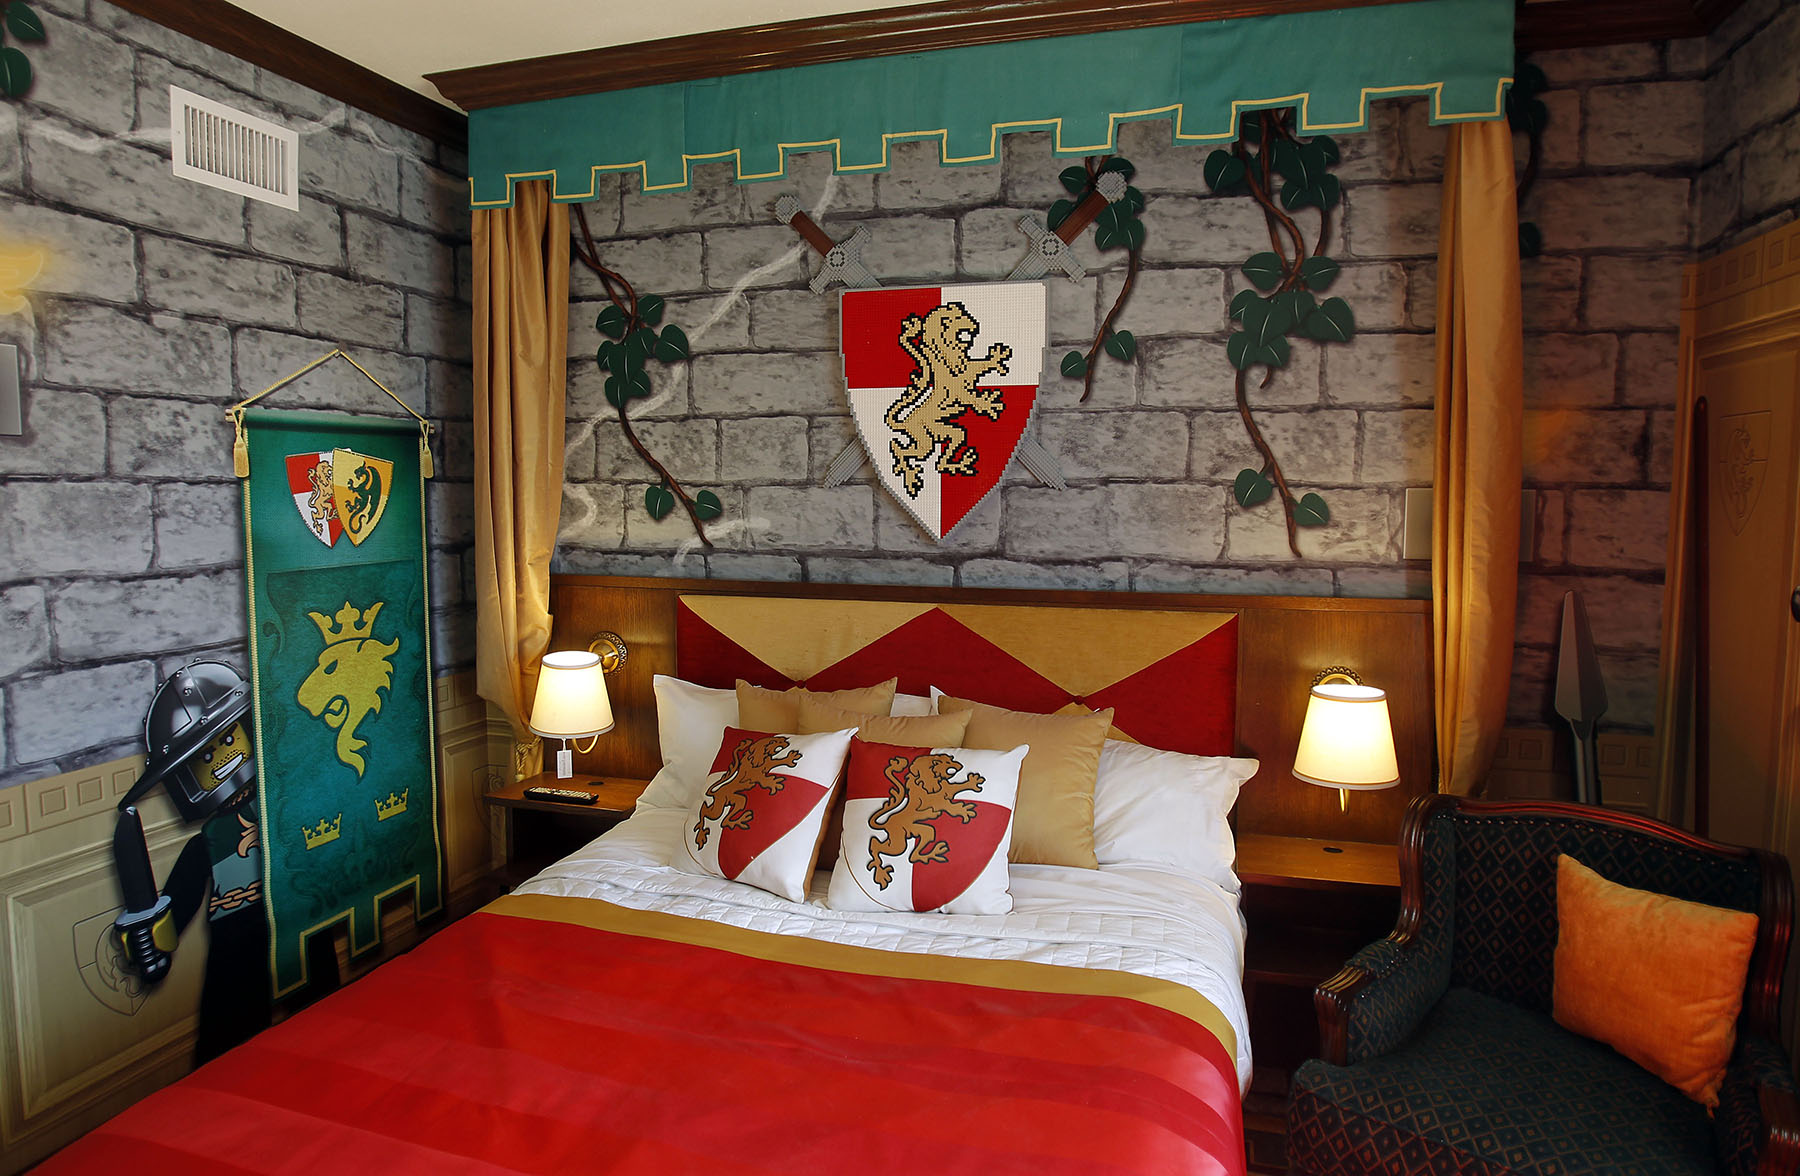 Legoland california resort opens lego themed hotel for Art decoration ideas for room